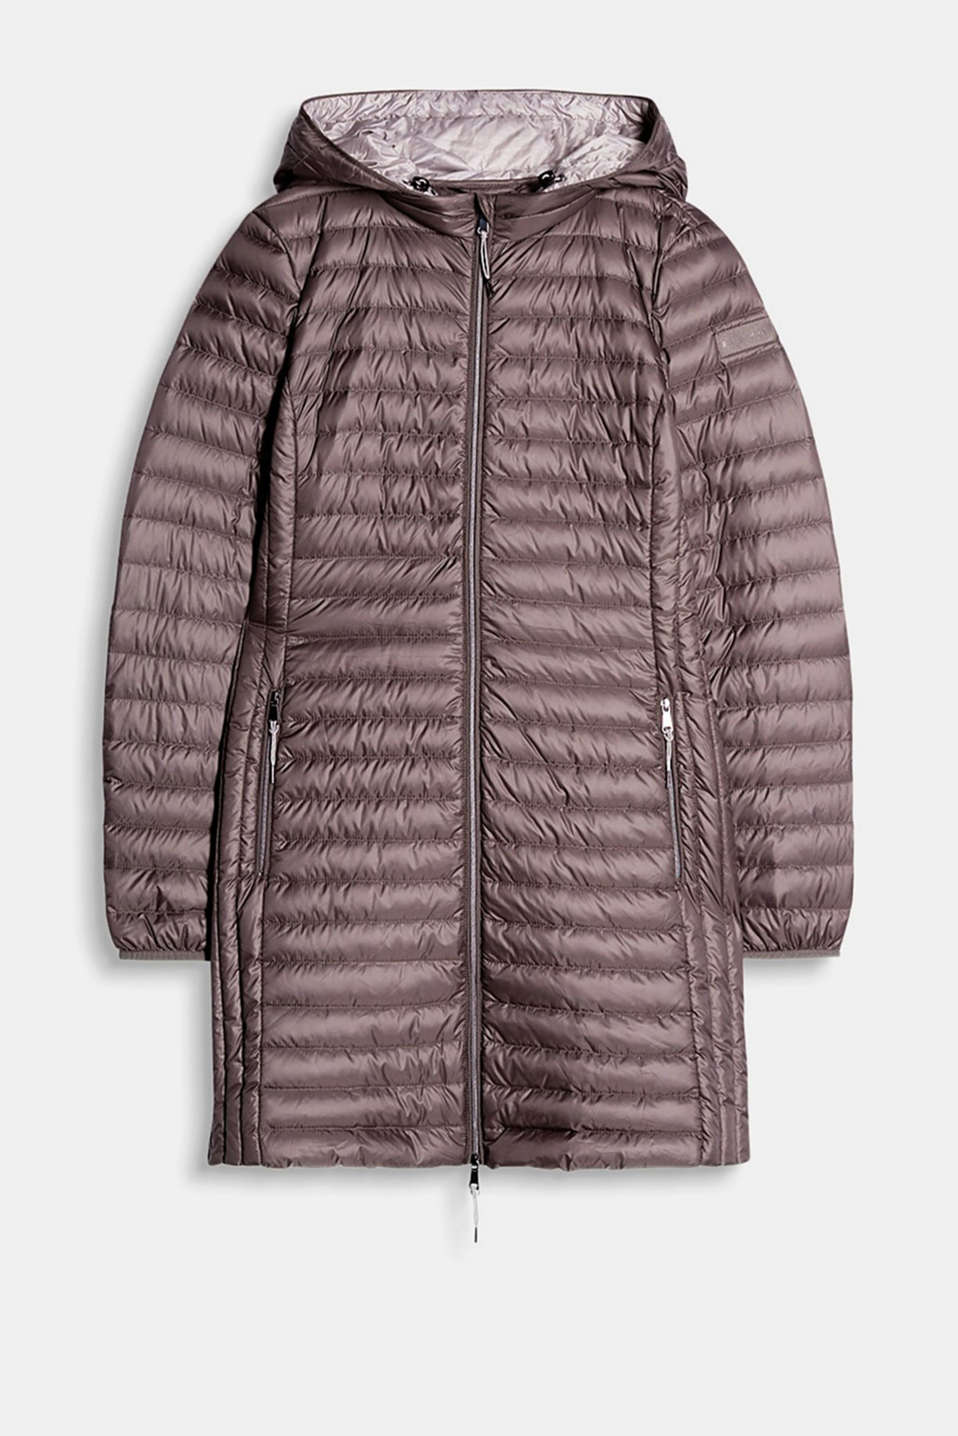 Fitted quilted coat in different quilted looks, with high-quality details and a practical storage bag